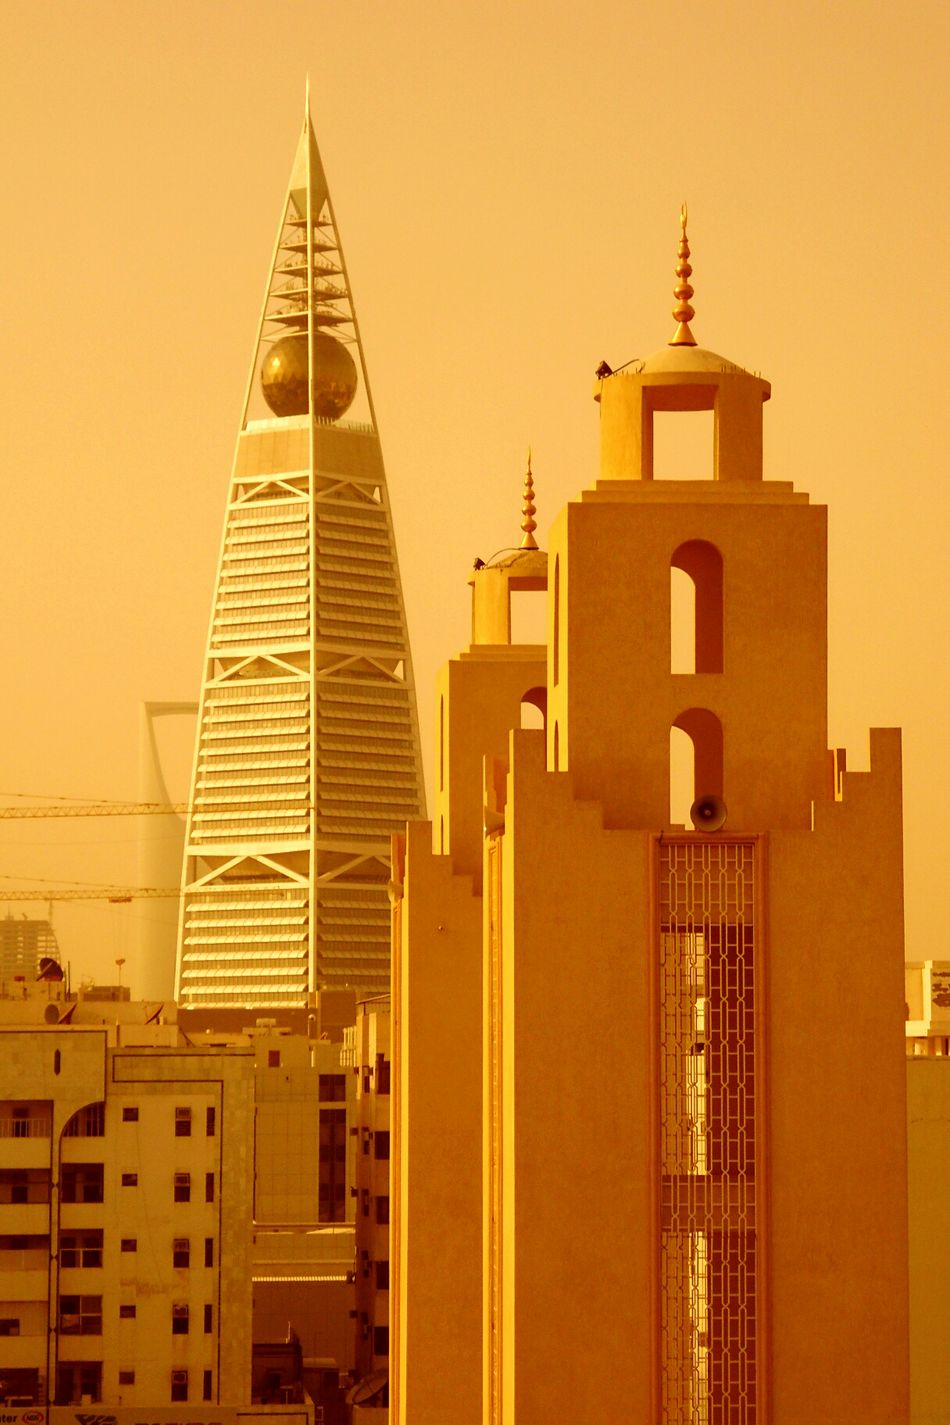 Sunset Tower Architecture No People City Skyscraper Orange Color Sand Dust In The Wind Dusty Ryadh Riad Saudi Arabia